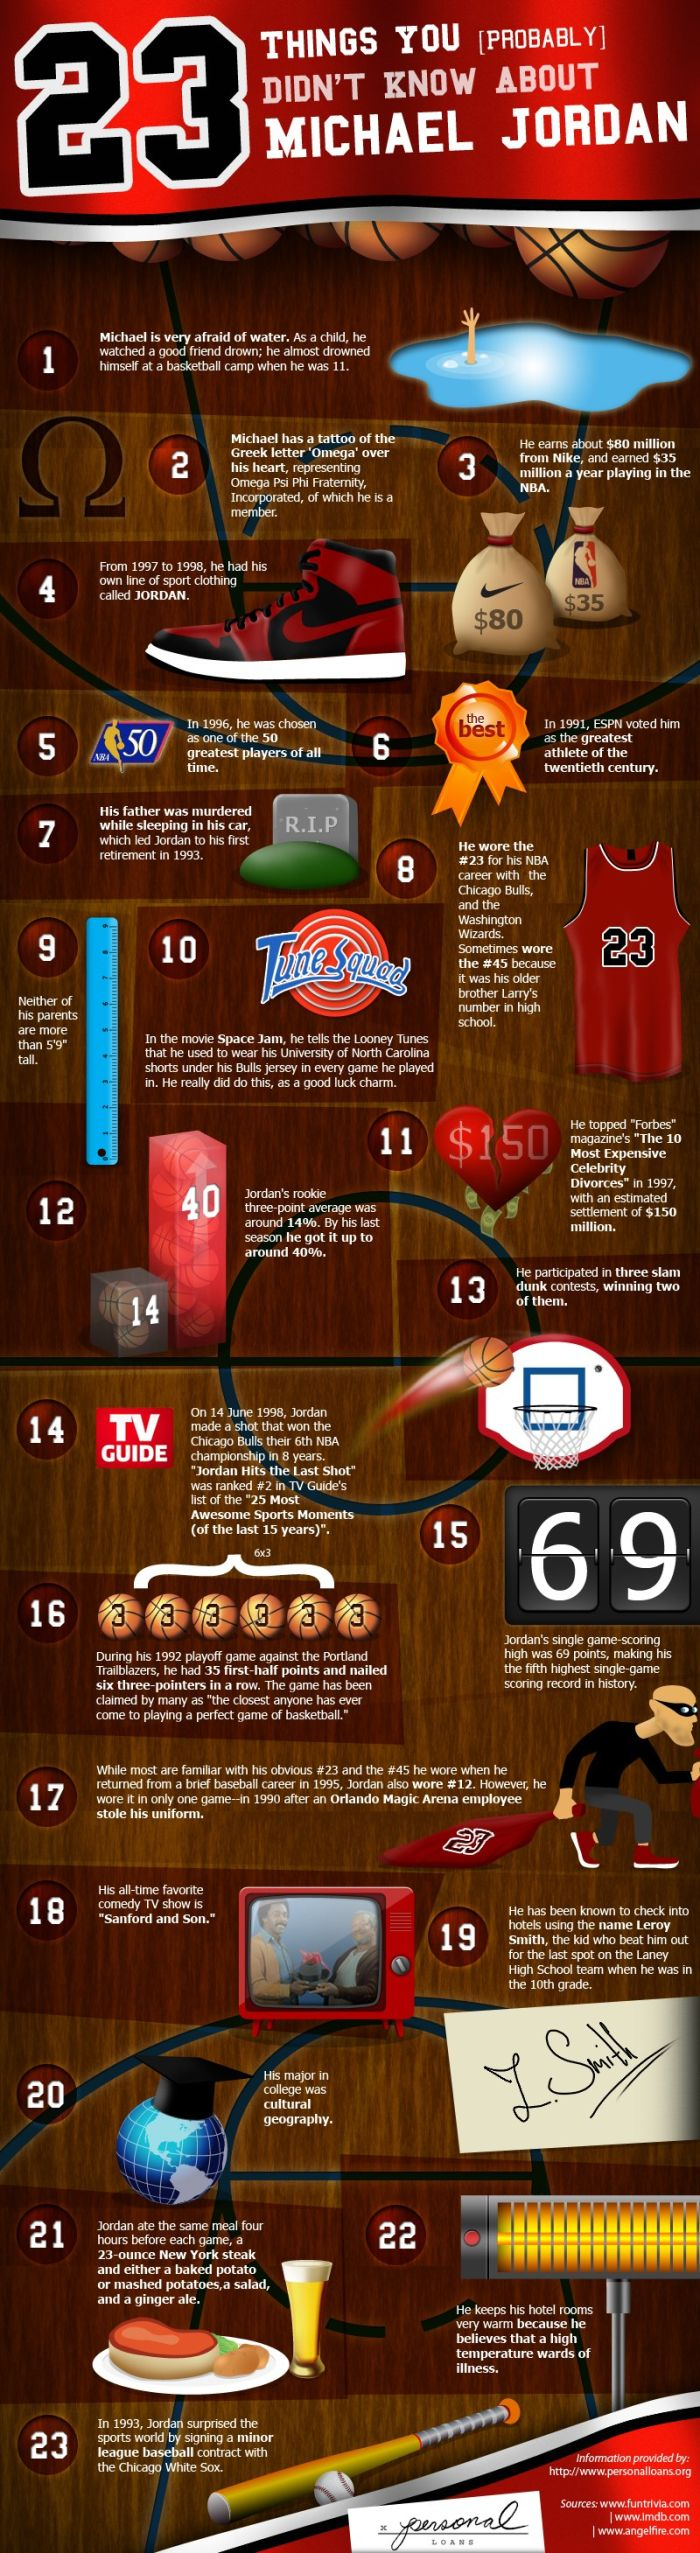 23 Things You Don't Know About Michael Jordan (infographic)